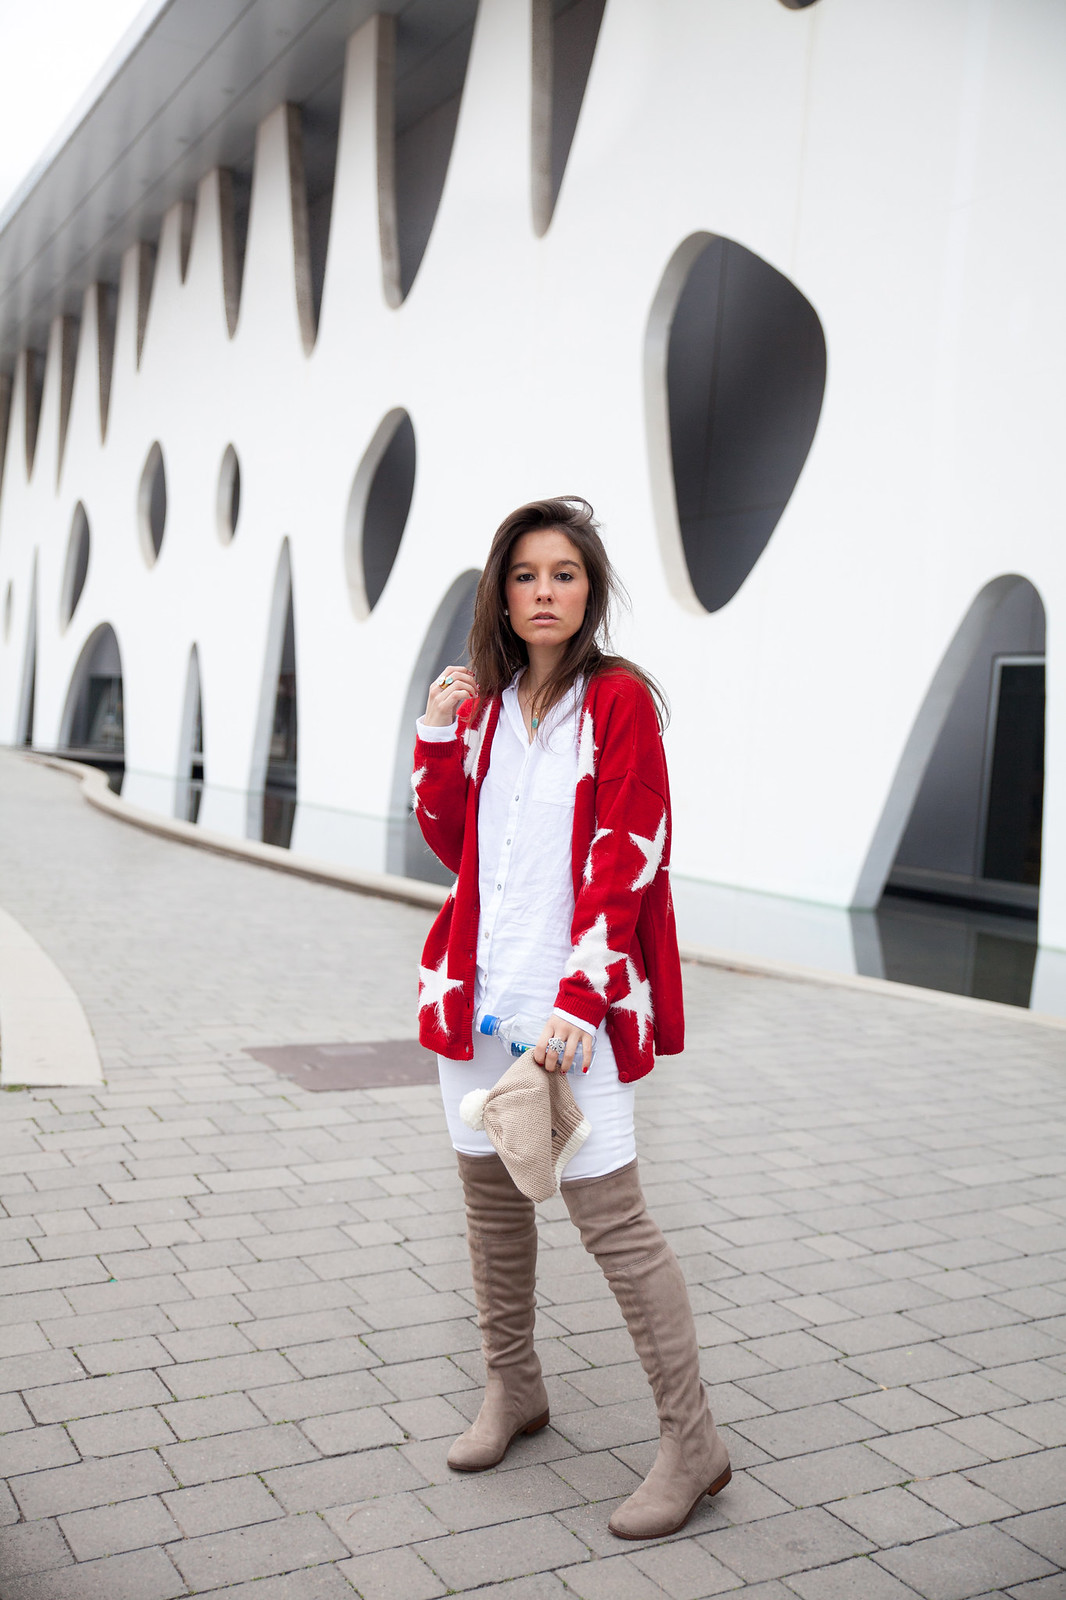 red cardigan supreme nails rüga collection theguestgirl the guest girl stars cardigan style steve madden over the knee shoes fiji water spain barcelona fashion street style fashion week milan london nyc